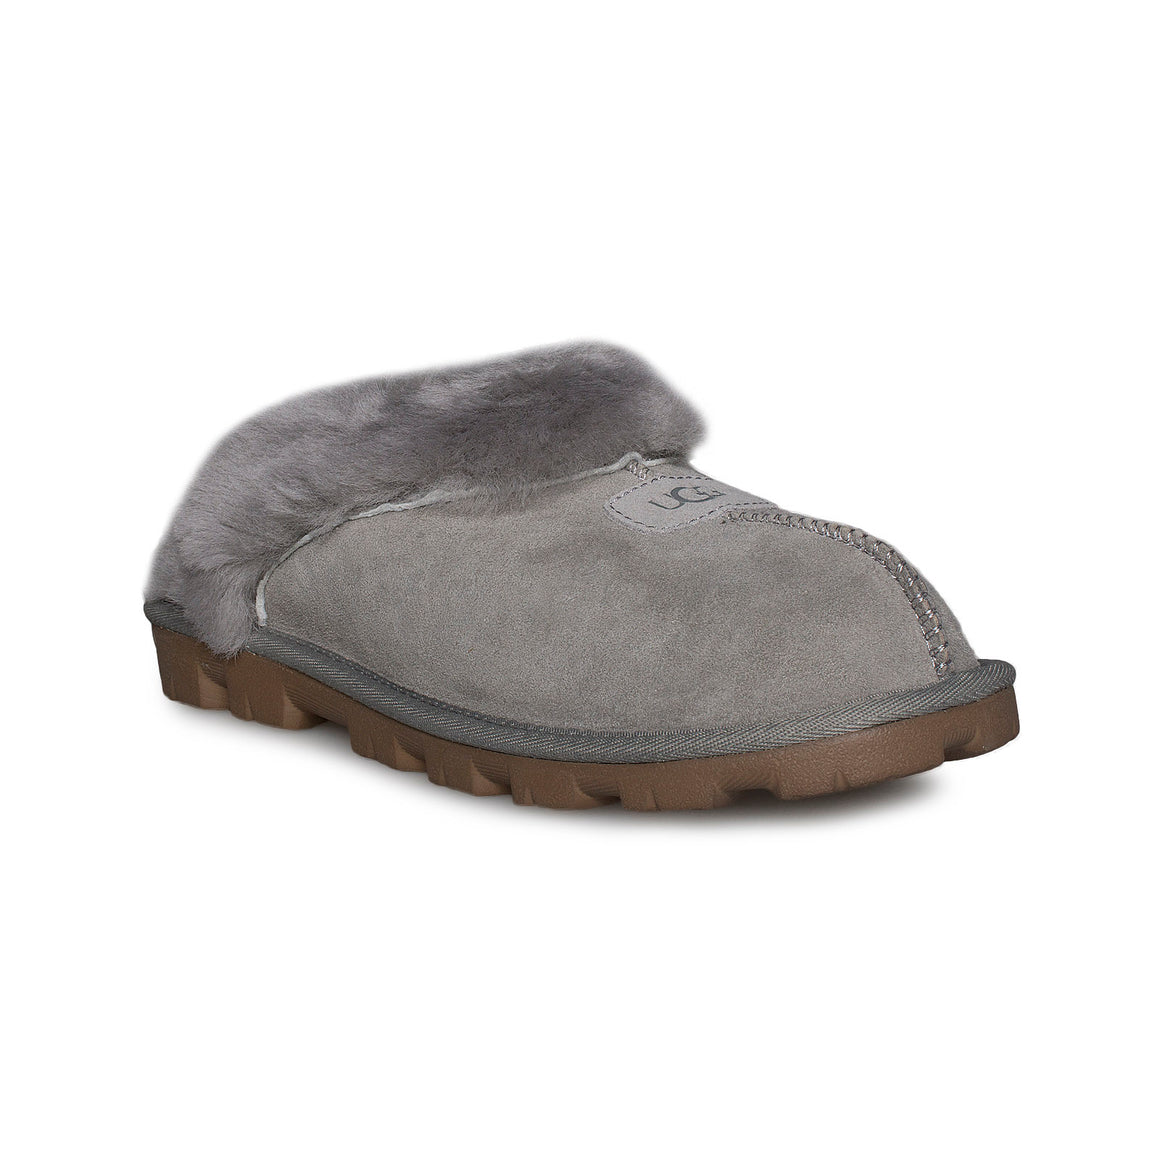 UGG Coquette Seal Slippers - Women's